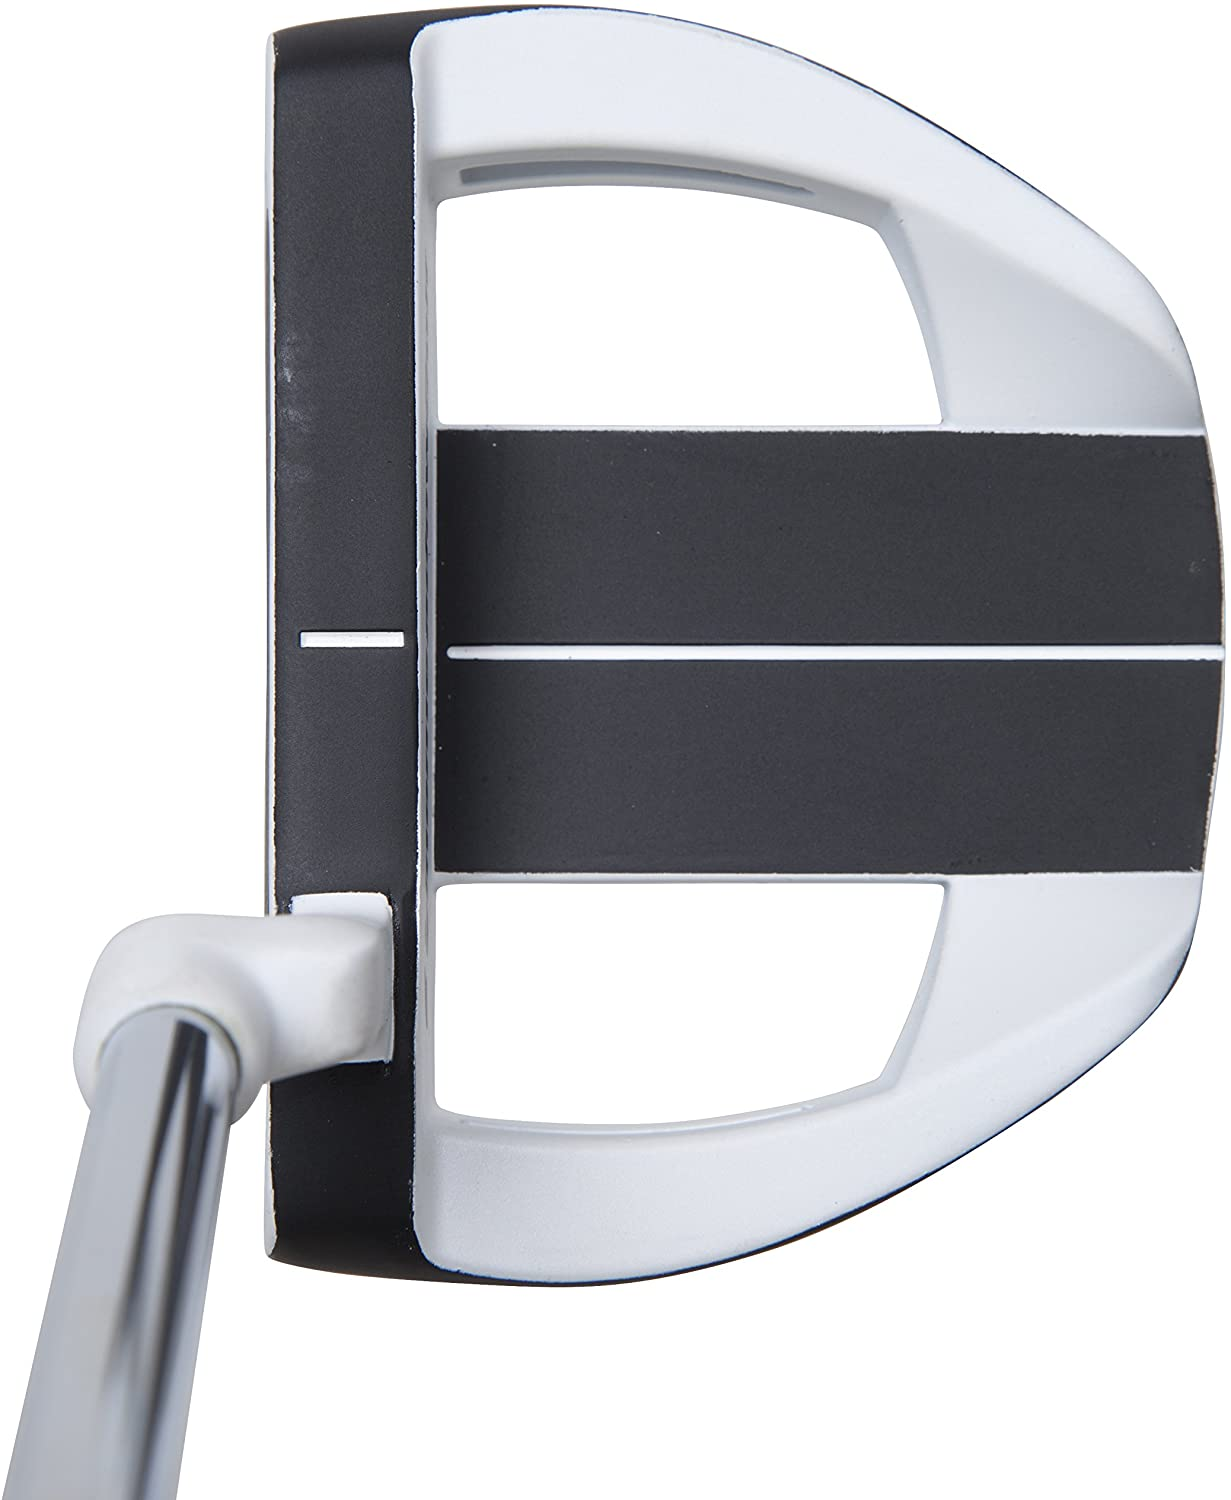 Best Golf Clubs for Mid Handicappers 1